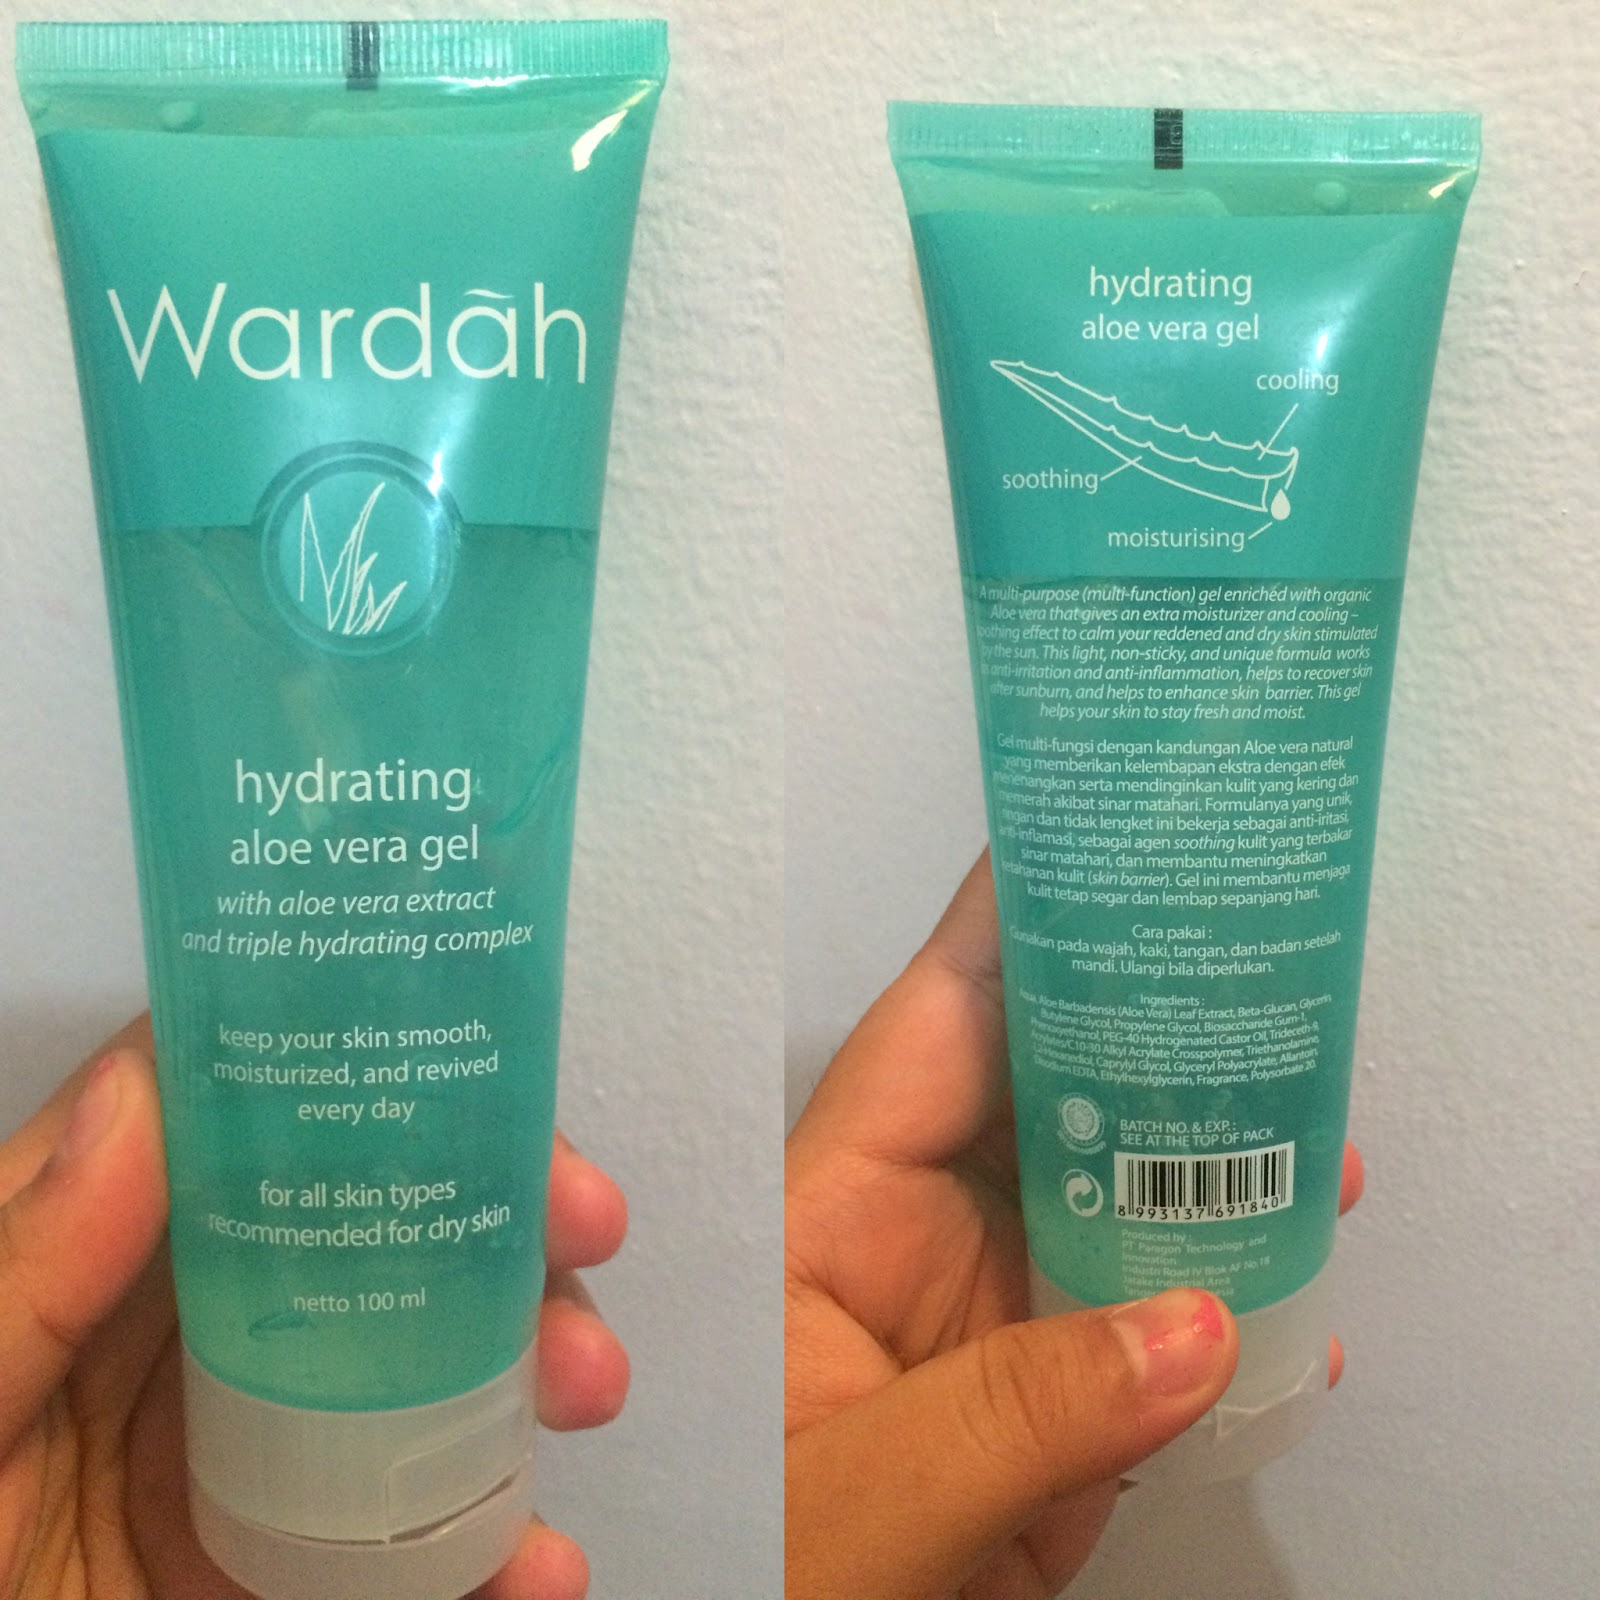 FORUM Review Wardah Hydrating Aloe Vera Gel dong Body&Skincare